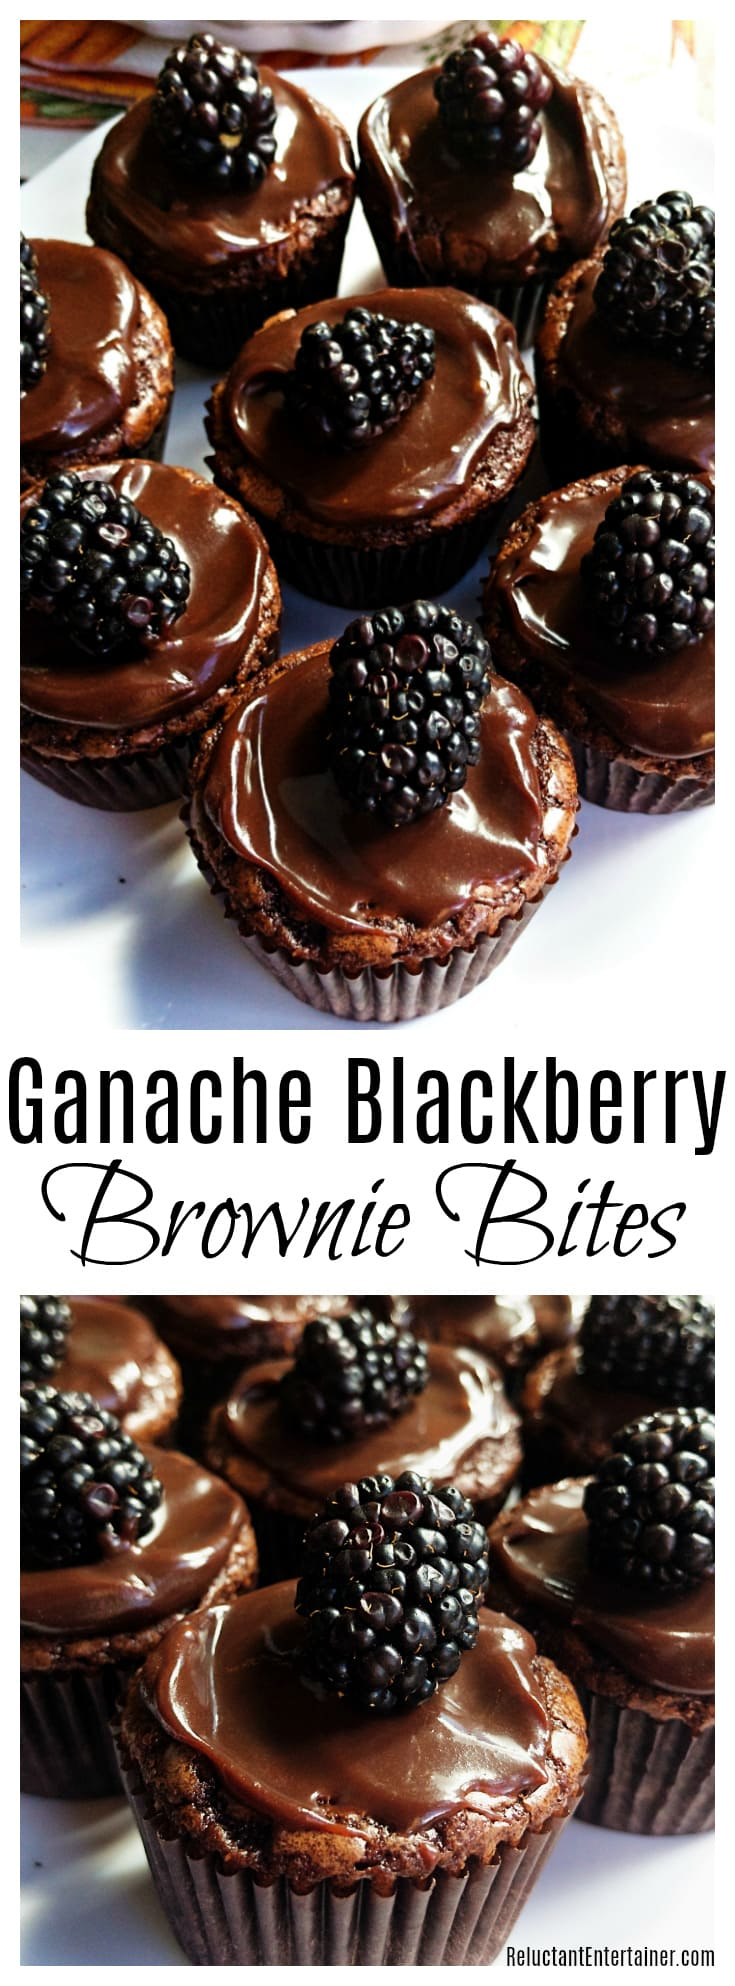 Ganache Blackberry Brownie Bites